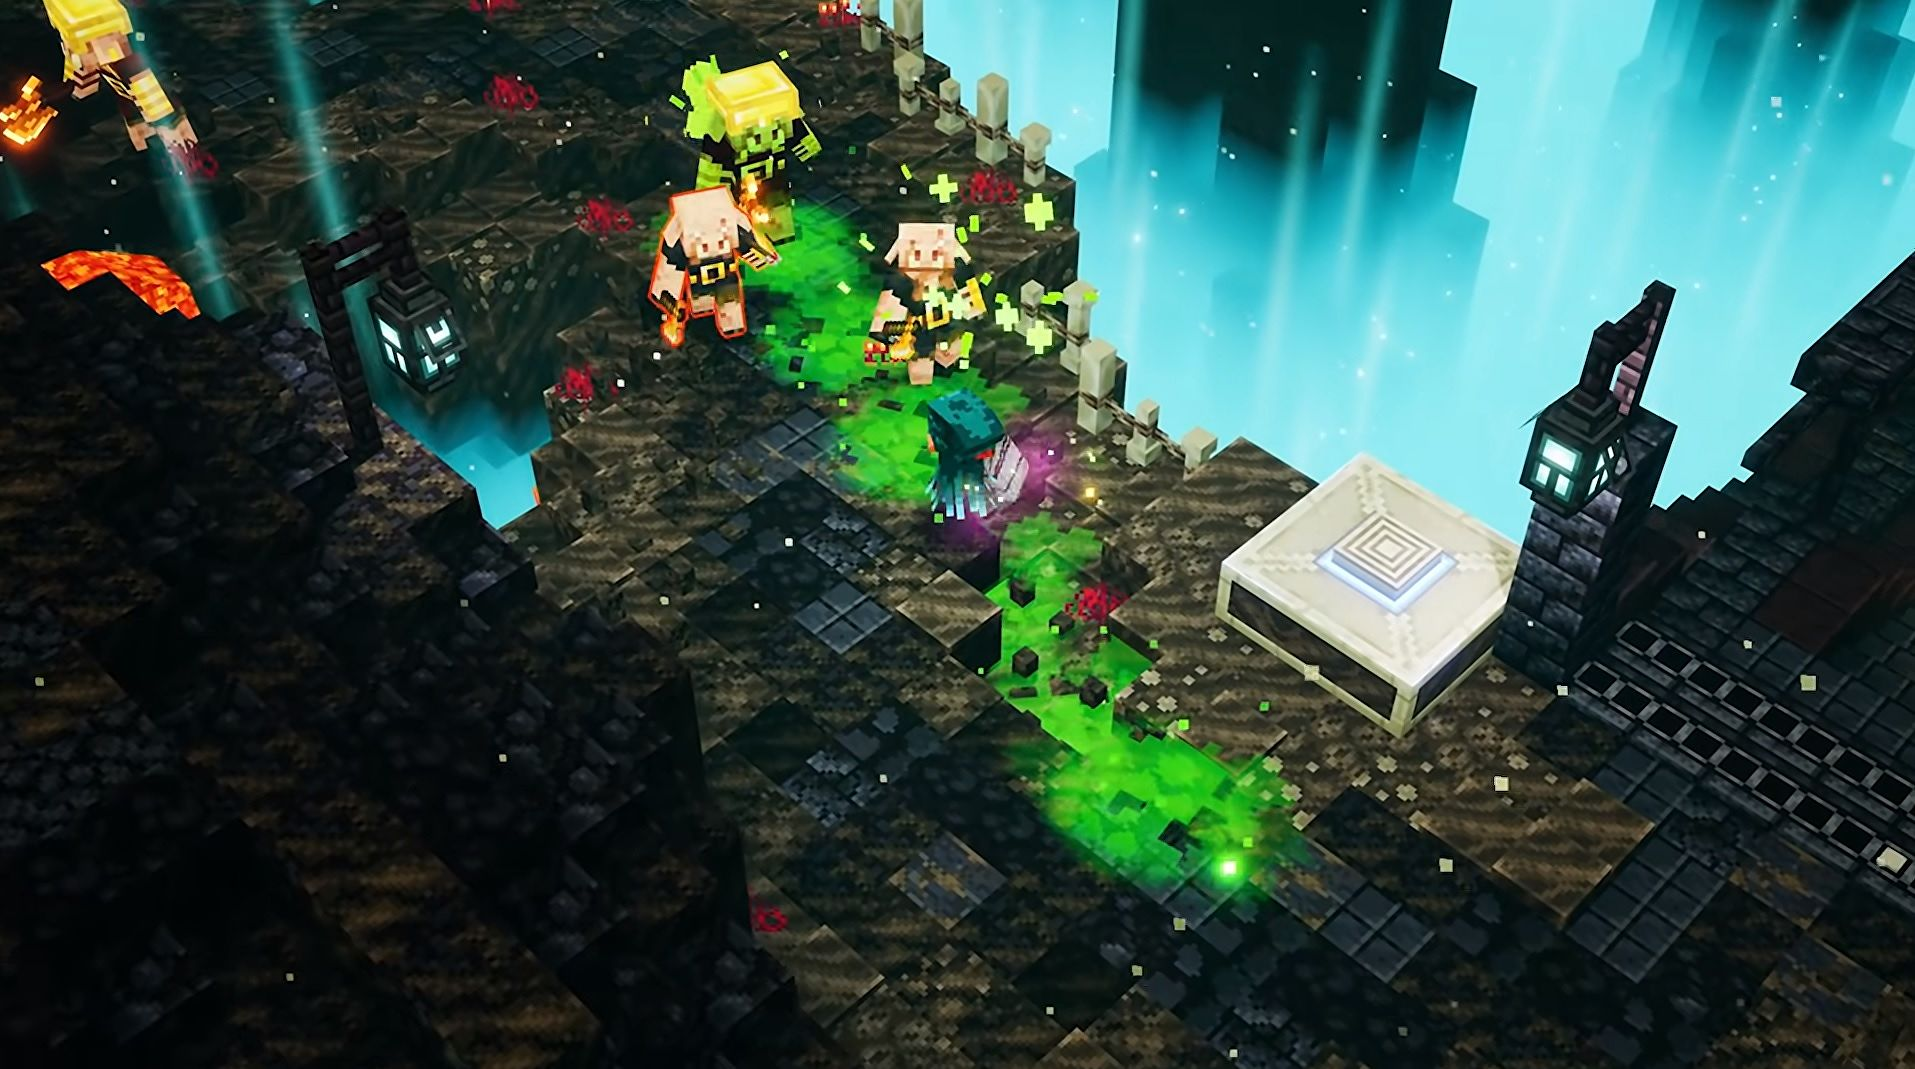 Minecraft Dungeons has portaled to the Nether in its new DLC